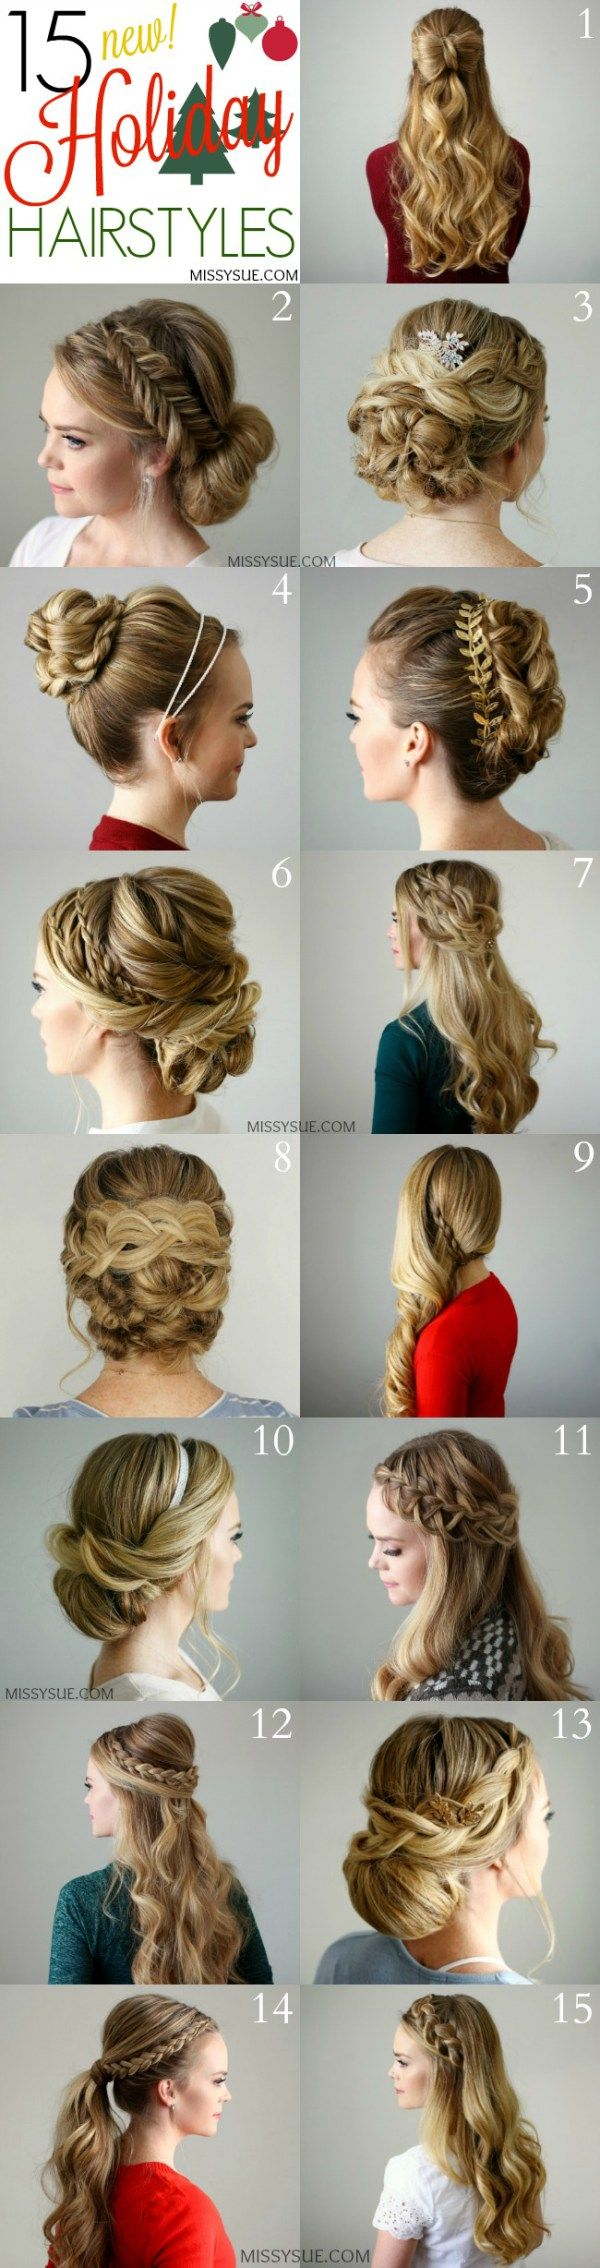 holiday hairstyles holidays hair style and makeup